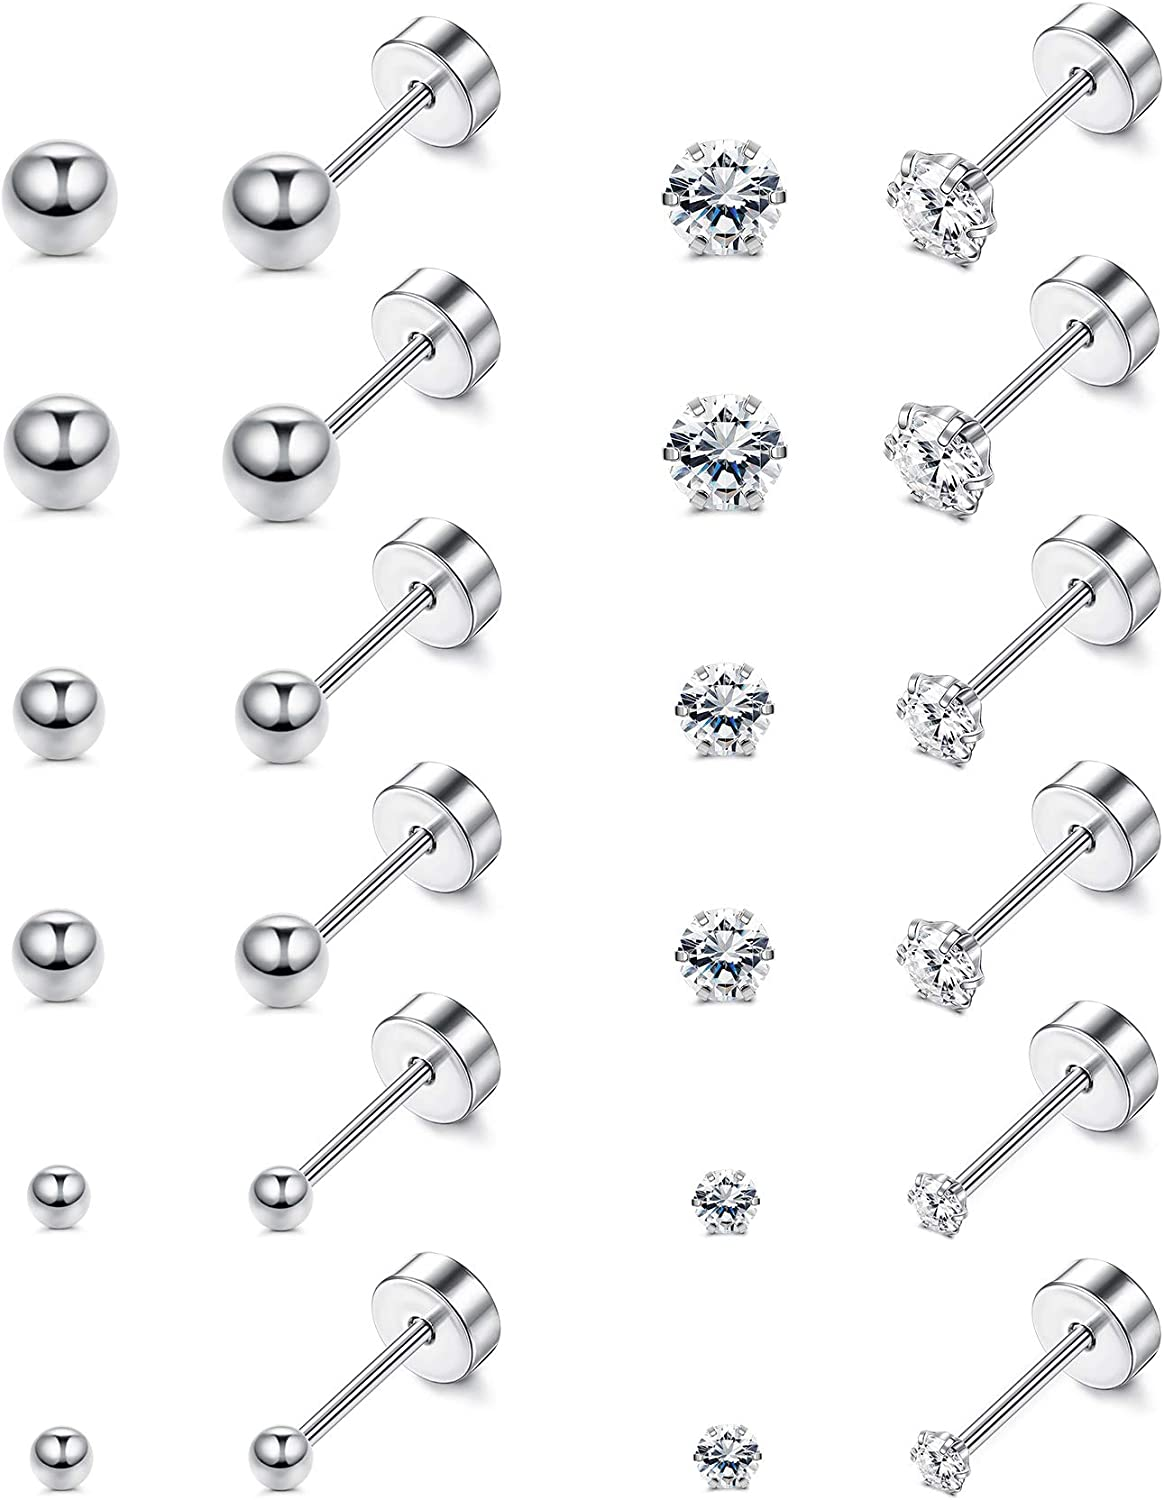 JOERICA 12 Pairs Stud Earrings for Women Men Stainless Steel Tiny Barbell Ear Stud Piercing Small CZ Round Ball Cartilage Earrings Set 2-4MM